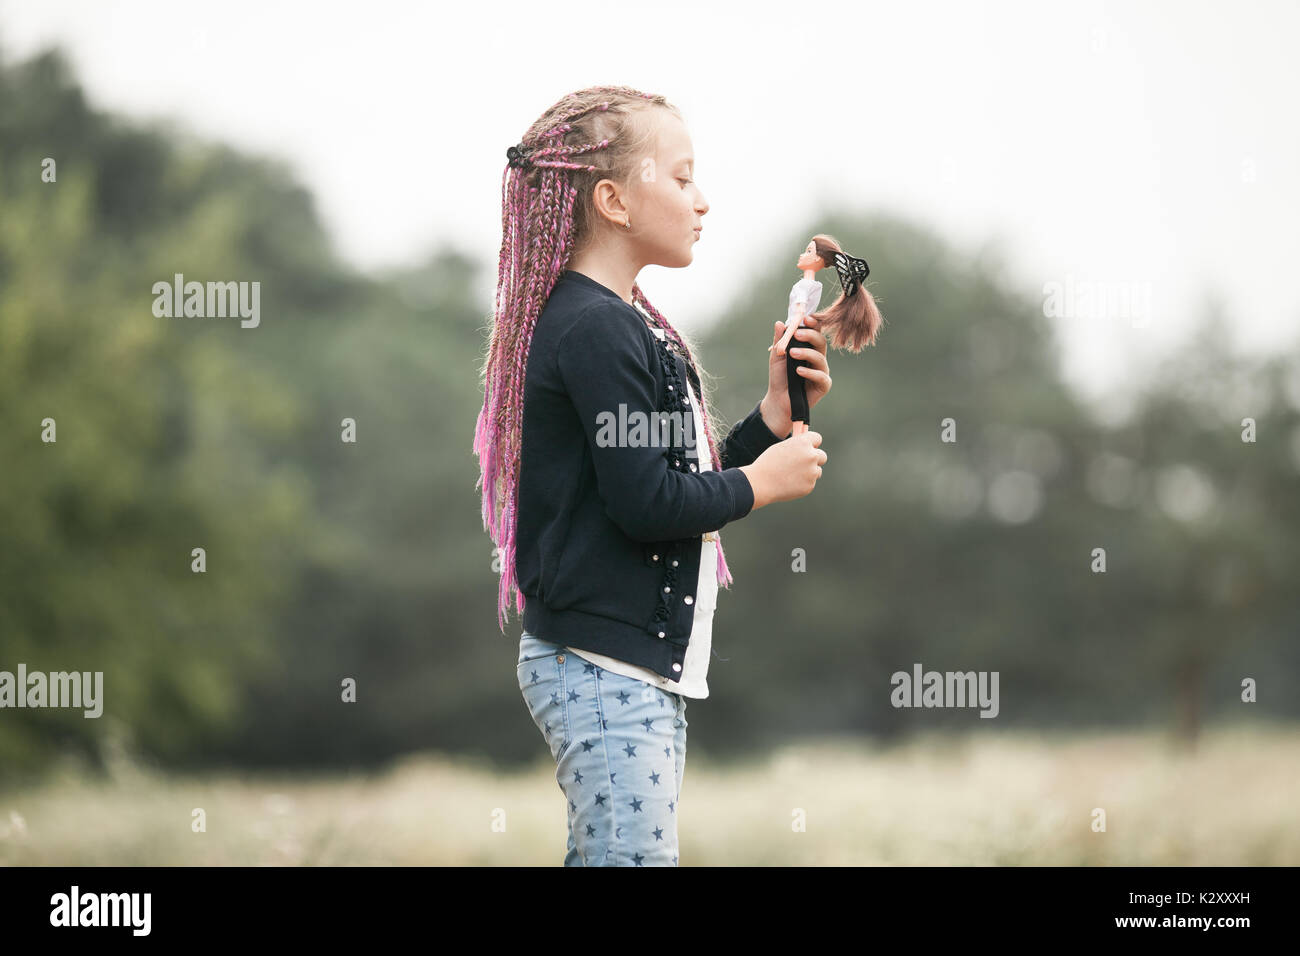 Child girl with pigtails plays with her doll on walk. - Stock Image